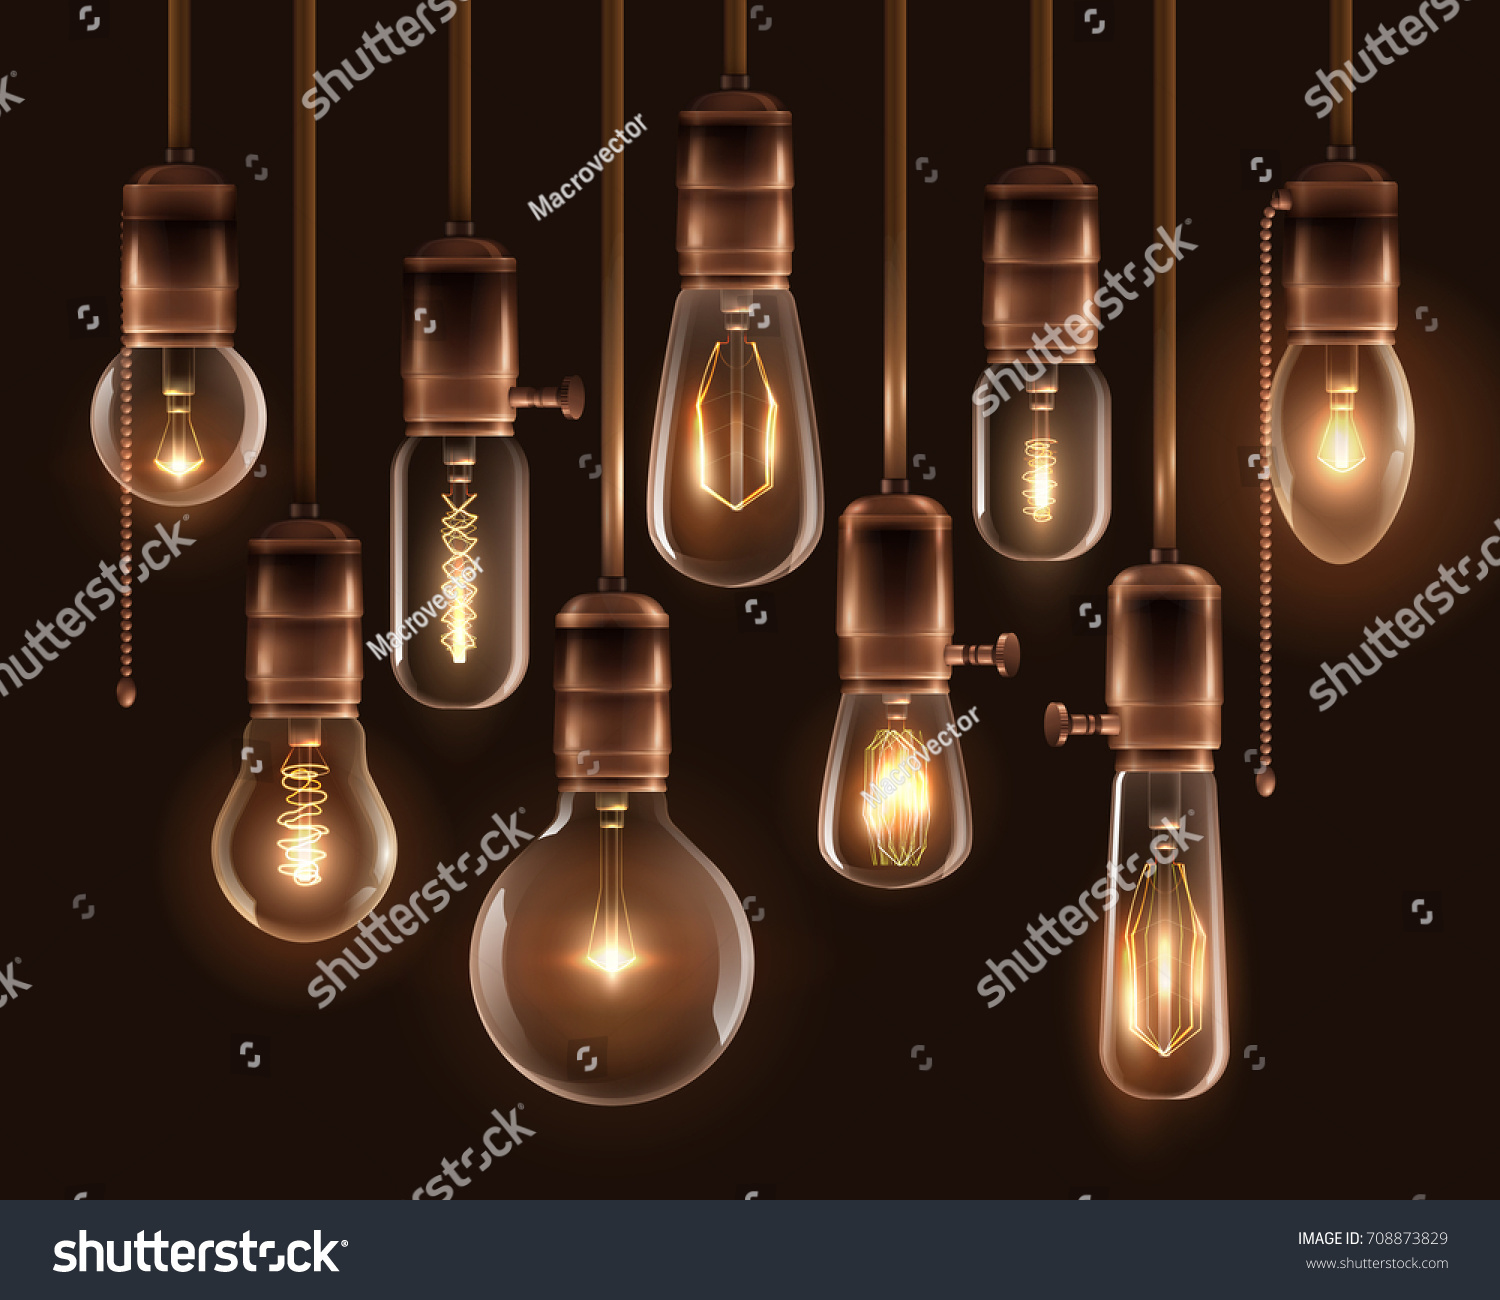 Realistic Vintage Glowing Light Bulbs Icon Stock Vector